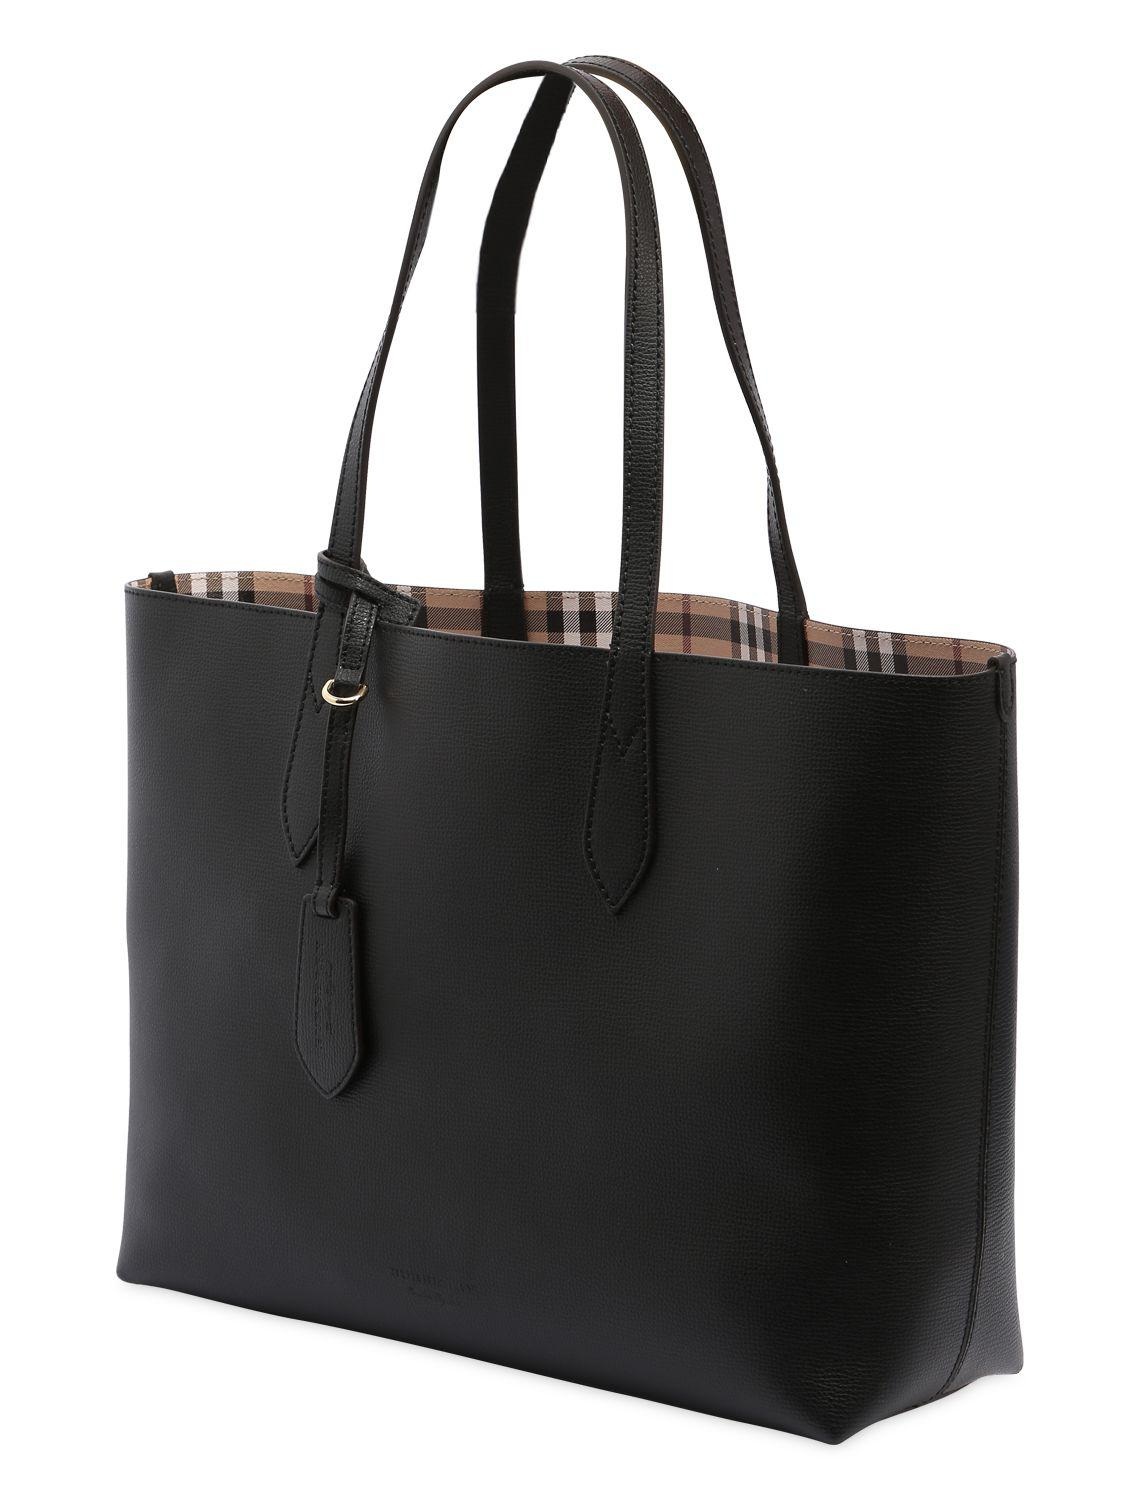 Burberry Leather Medium Reversible House Check Tote Bag in Black